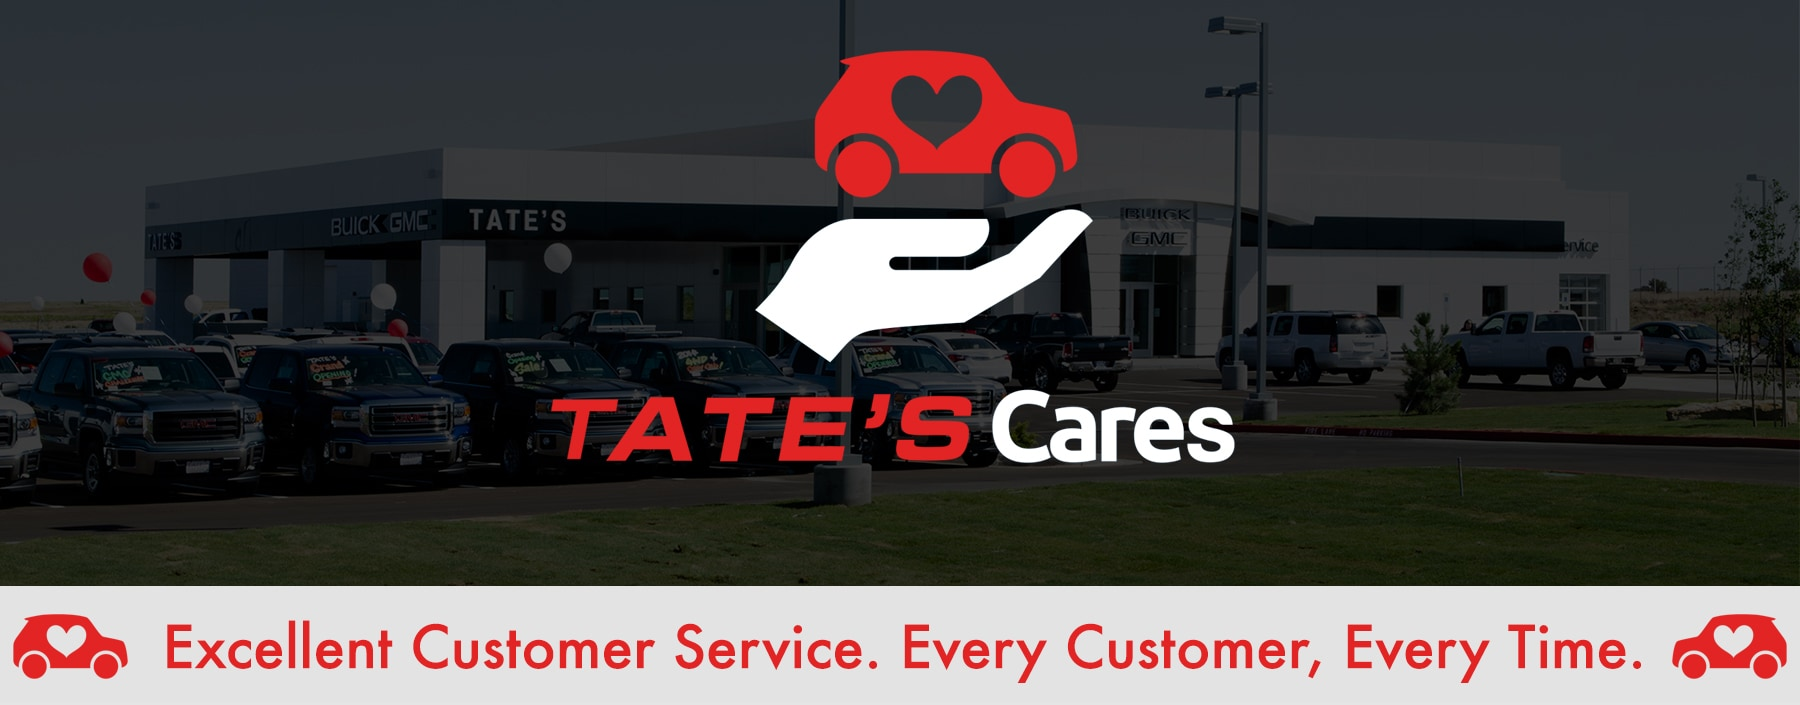 Tates Nissan New Nissan Dealership In Show Low AZ - Show low car dealers